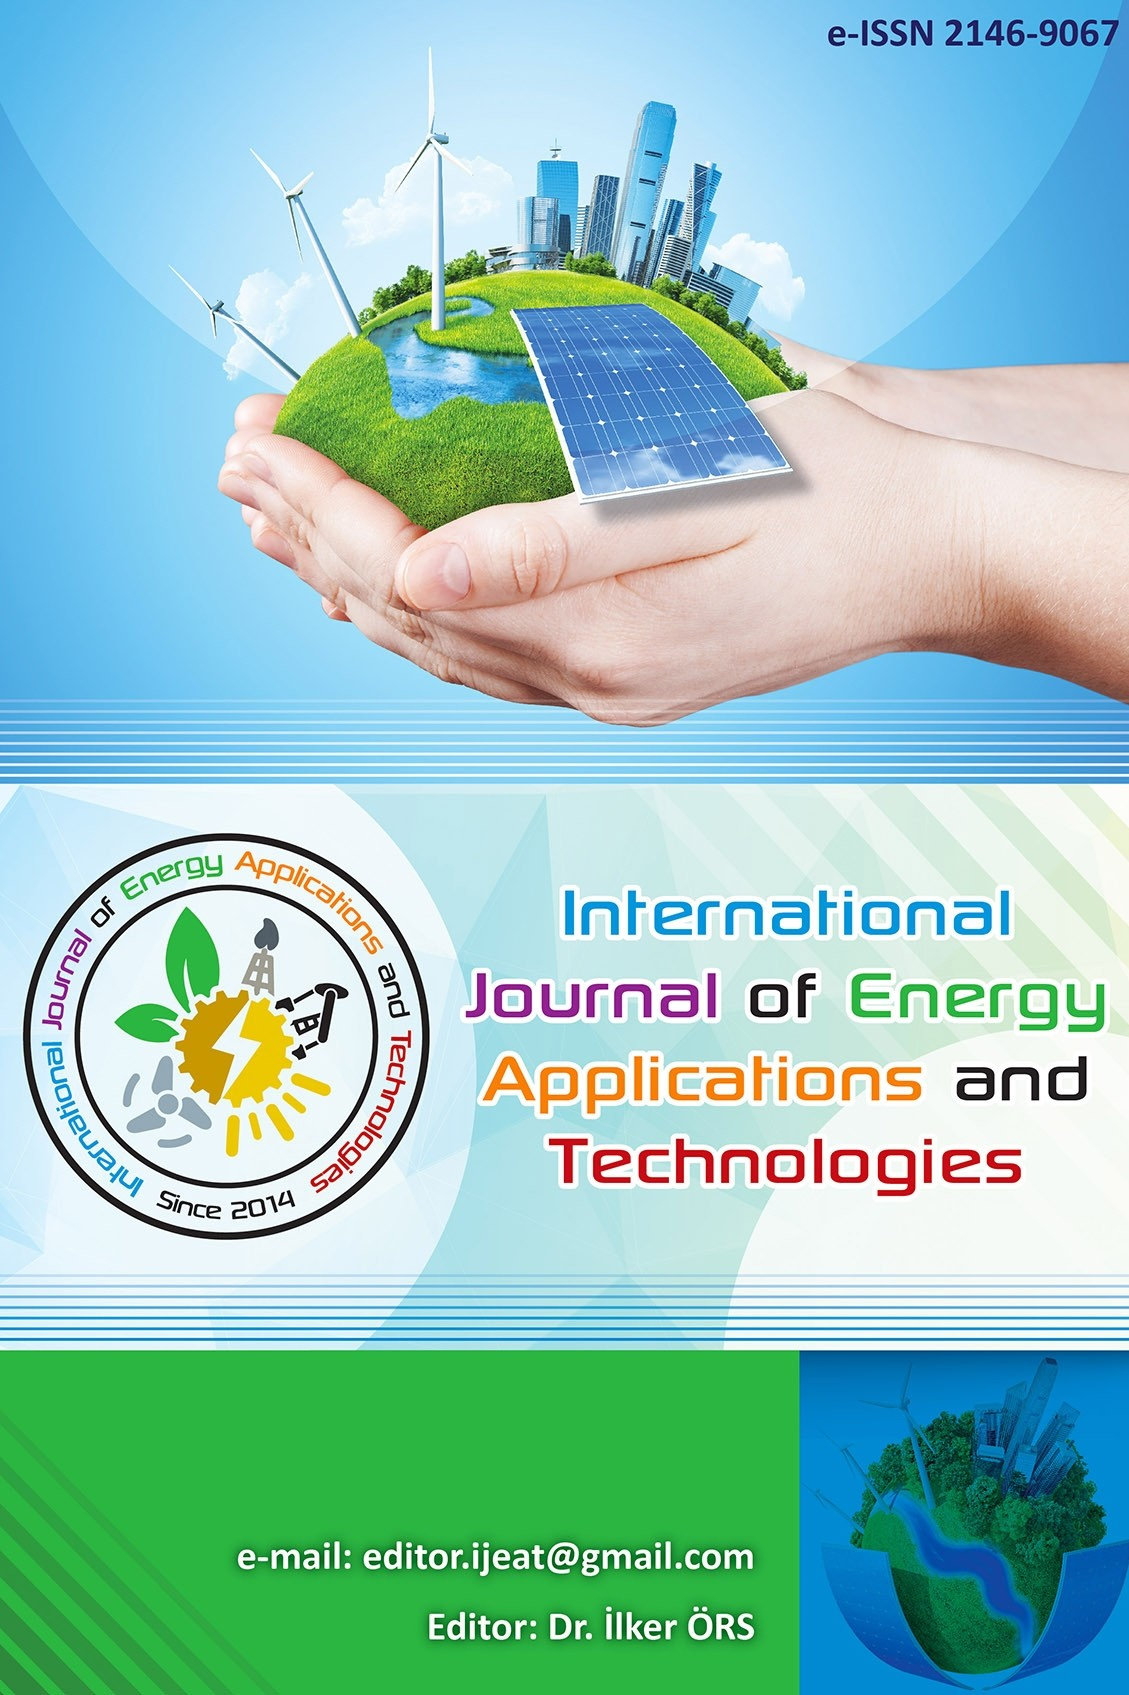 International Journal of Energy Applications and Technologies